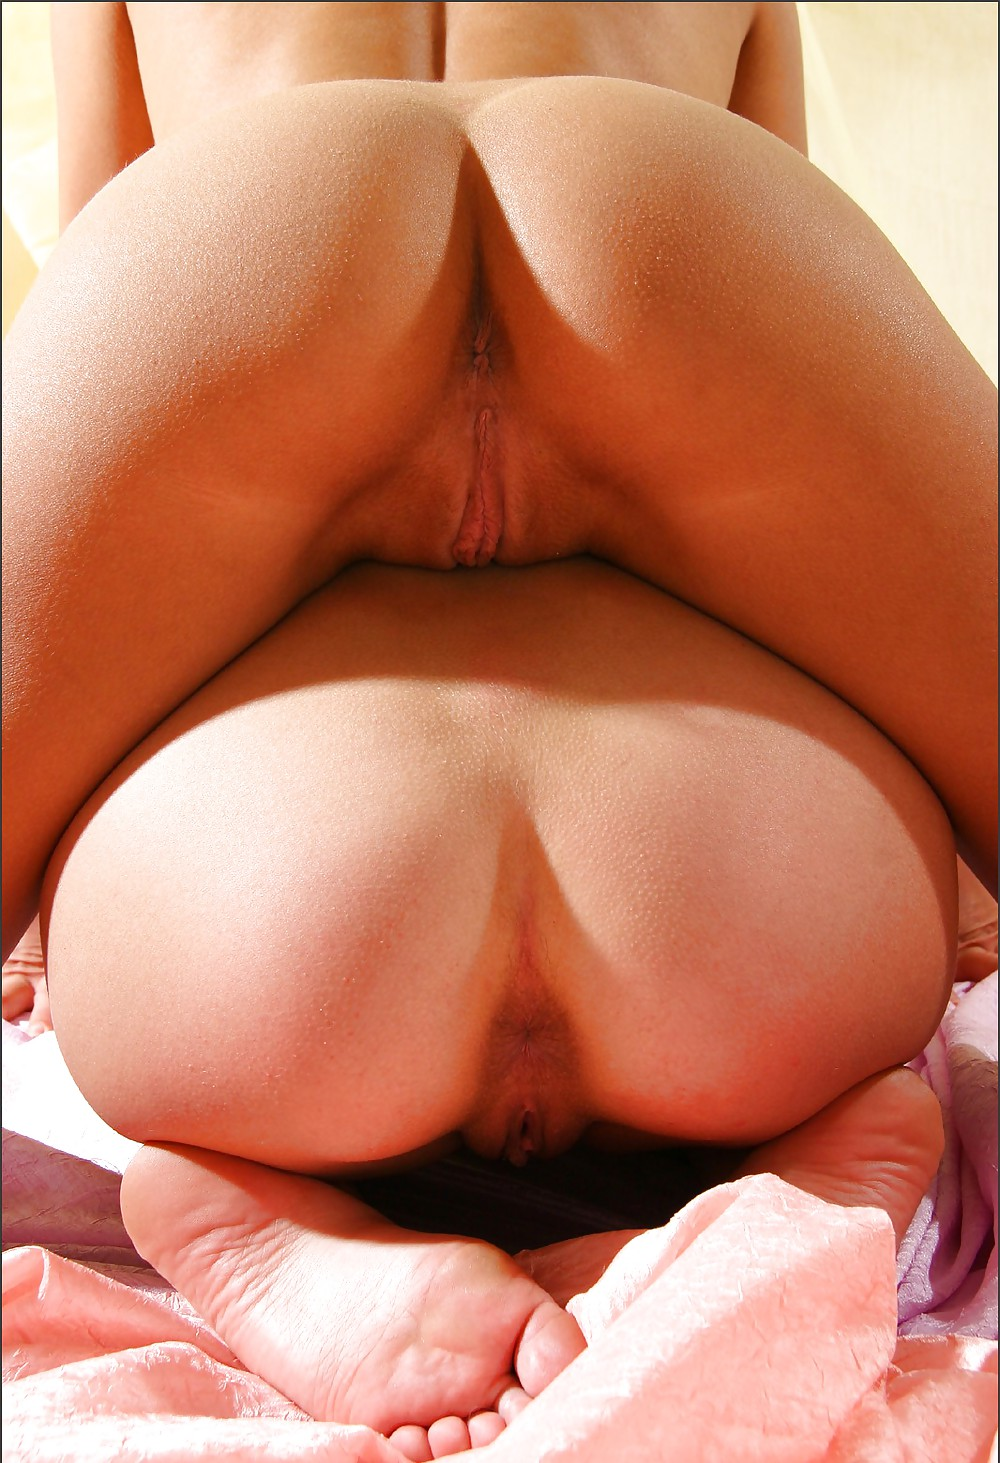 cookie bumstead porn pics western hentai pictures luscious